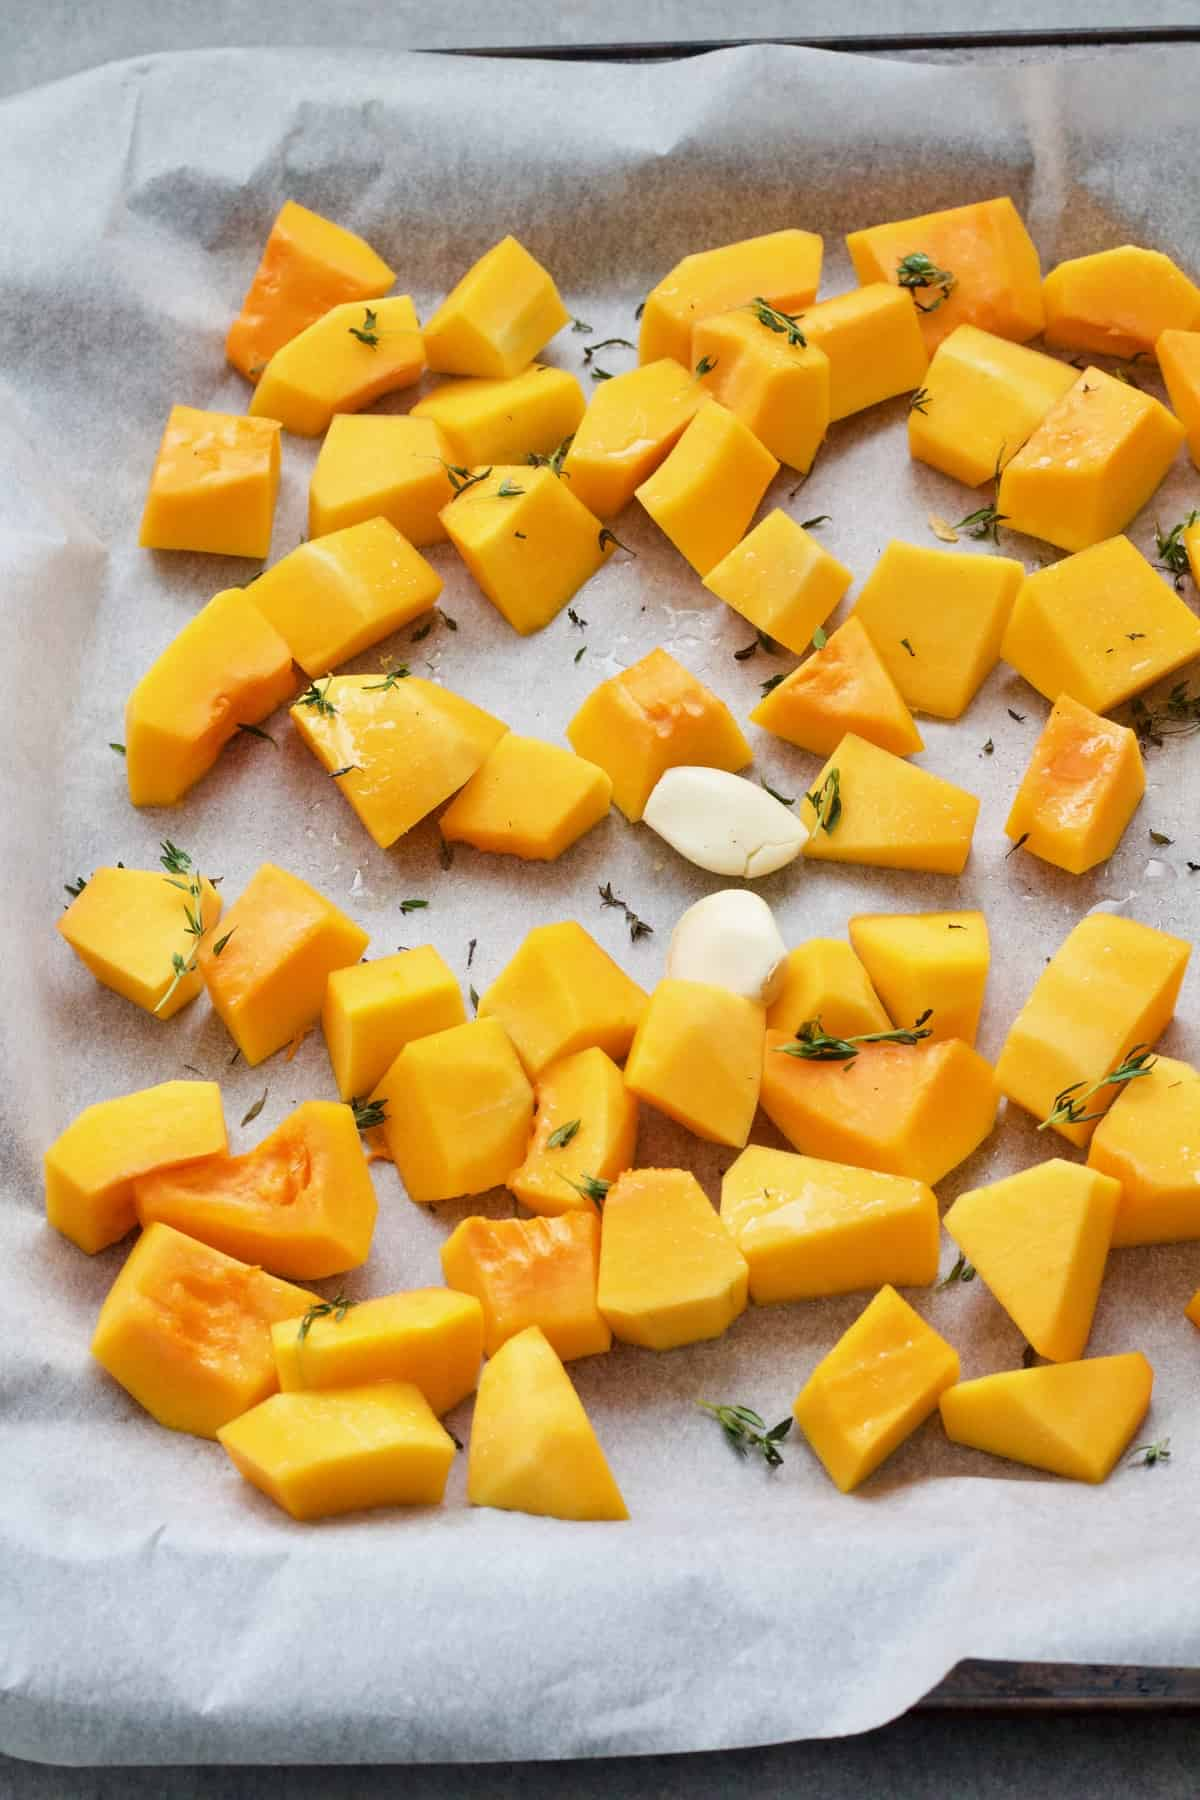 Chunks of butternut squash on a tray with 2 garlic cloves.